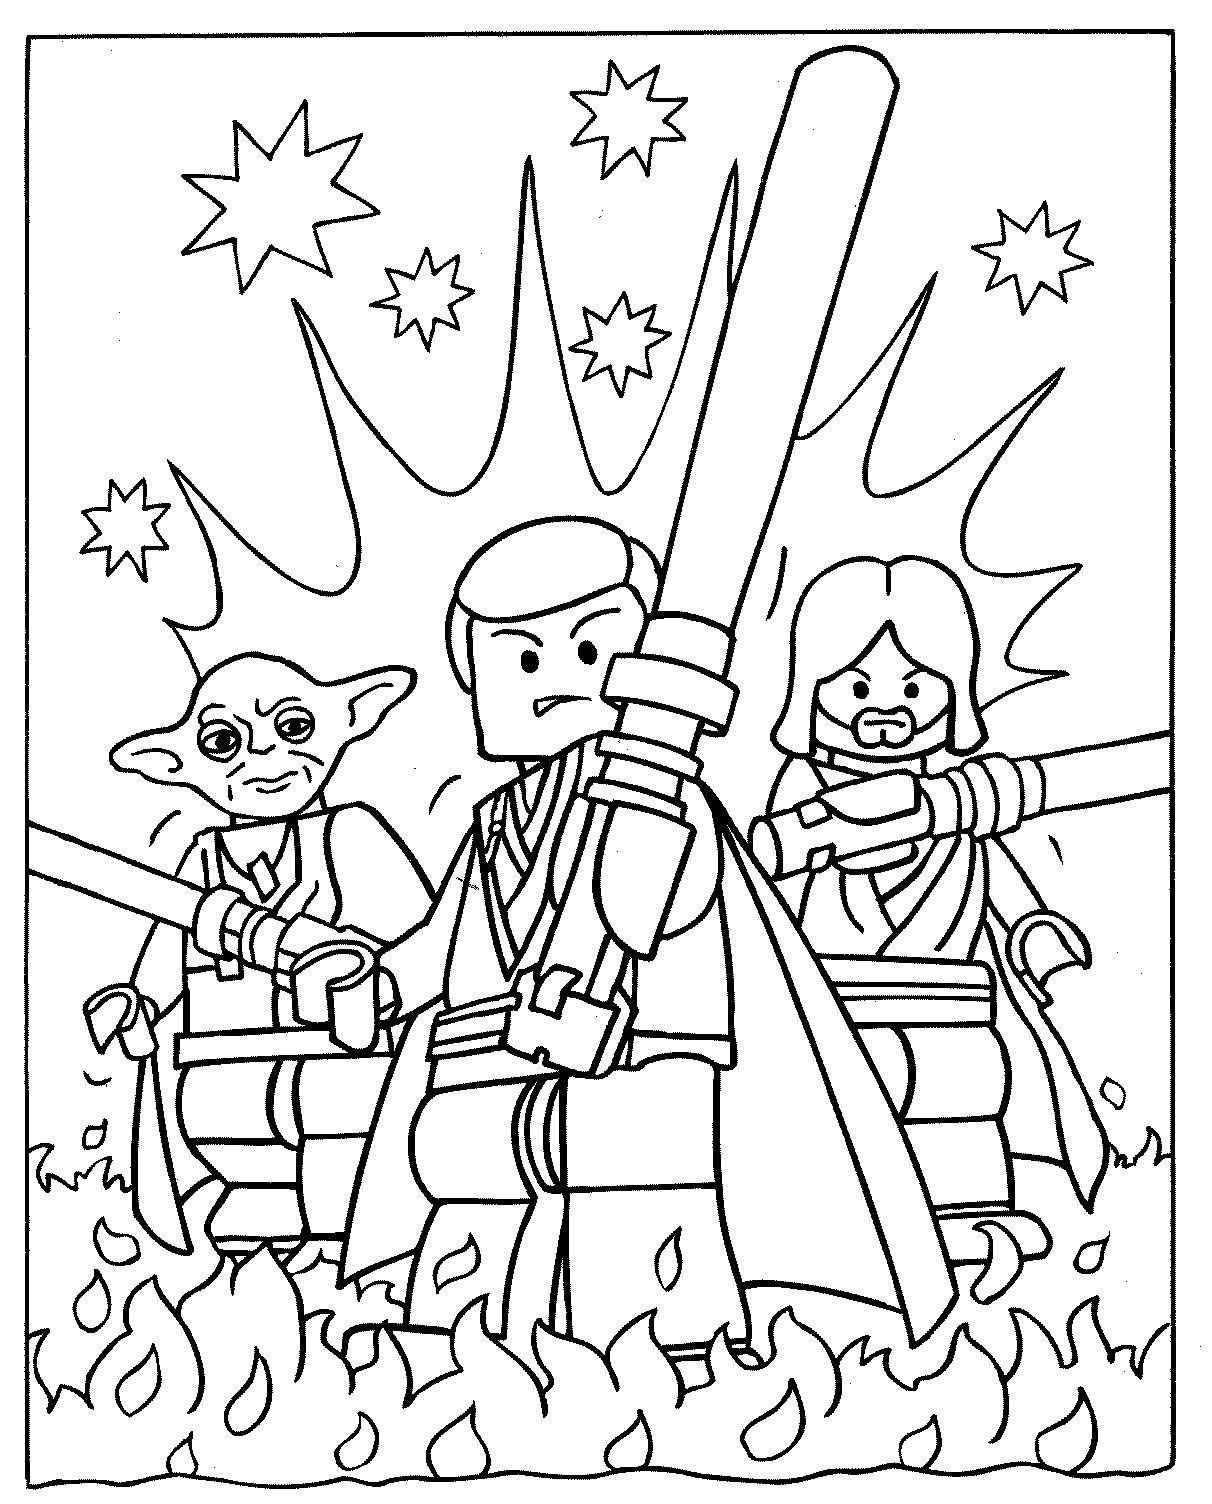 Coloring pages for restaurants - Lego Coloring Pages To Print Coloring Pages Pictures Imagixs